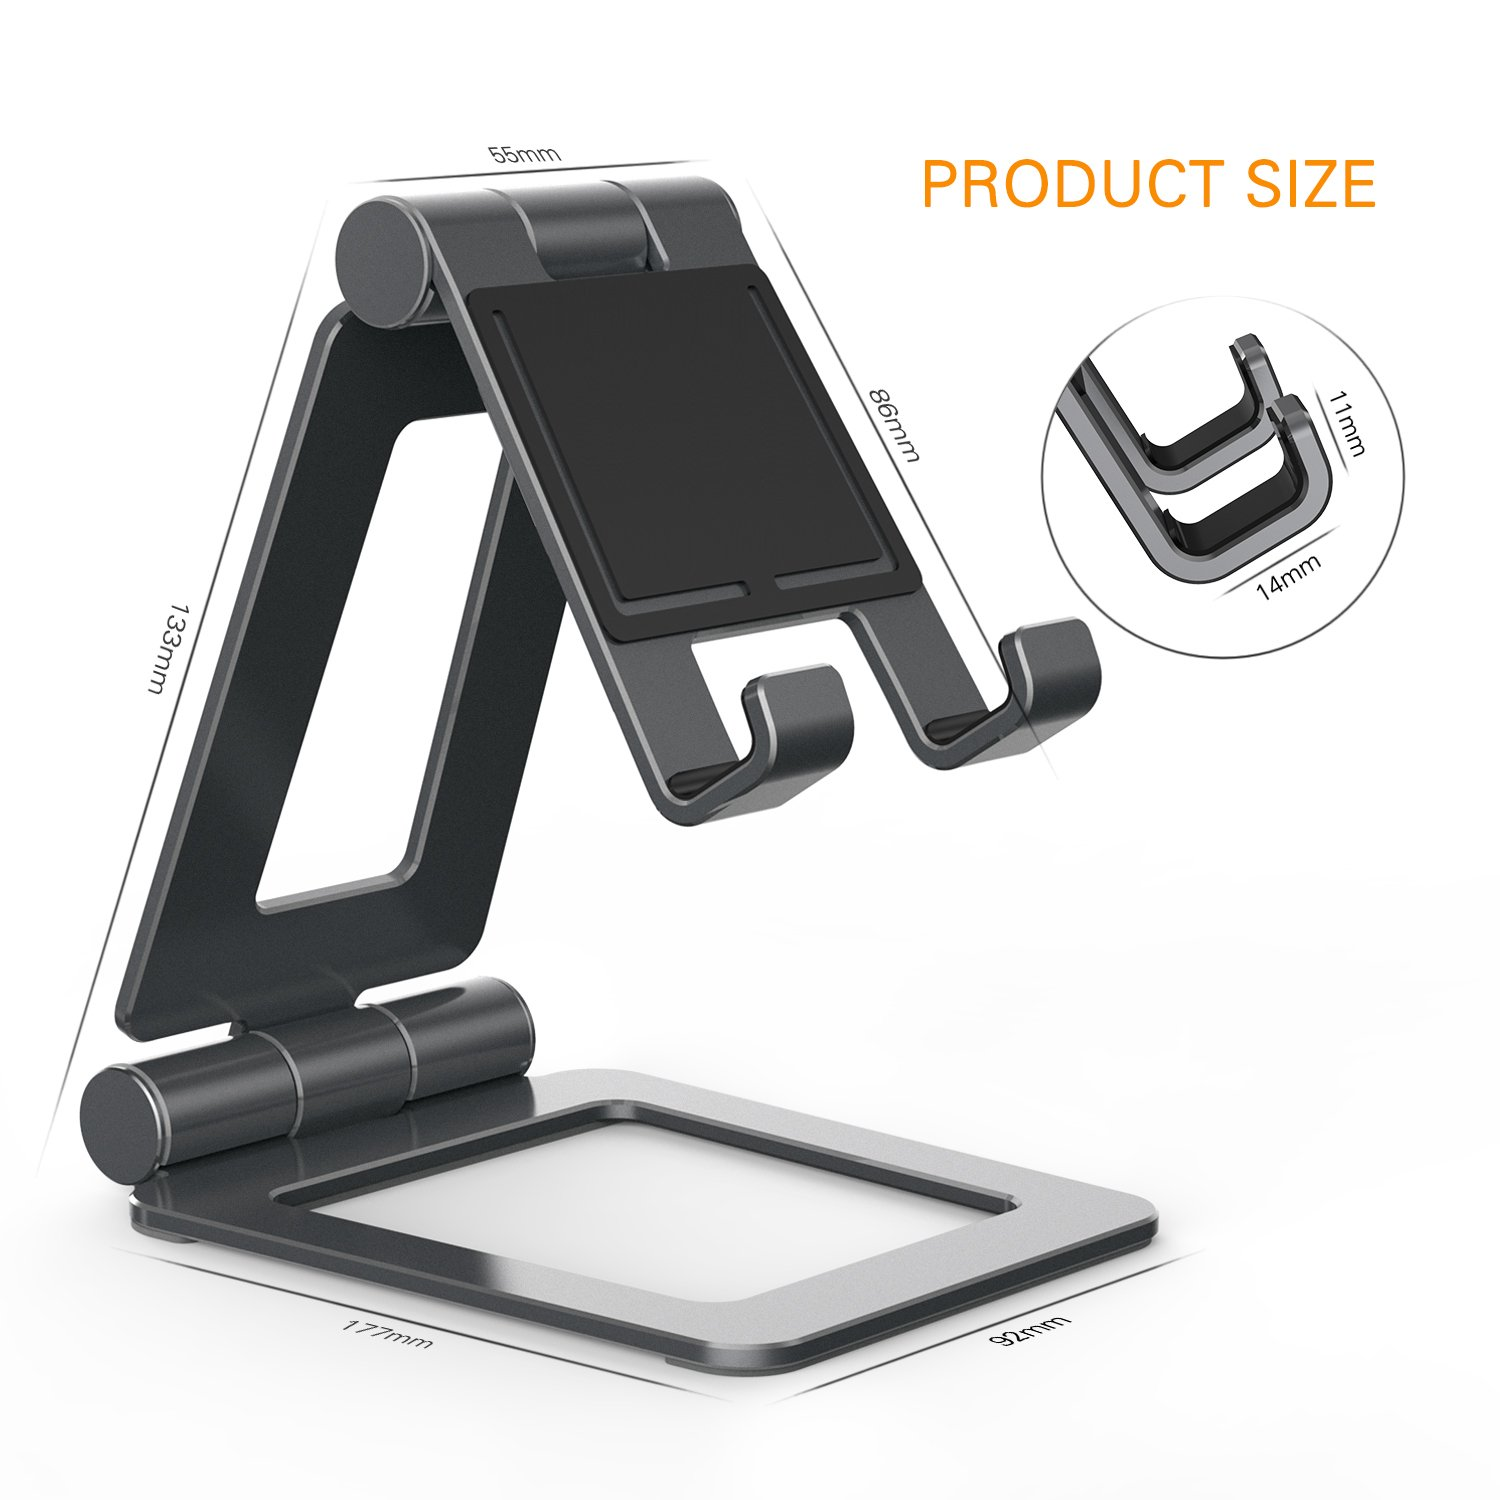 Adjustable iPad Stand, Tablet Stand Holders, Cell Phone Stands, iPhone Stand, Nintendo Switch Stand, iPad Pro Stand, iPad Mini Stands and Holders for Desk (4-13 inch) by Hi-Tech Wireless (Image #6)